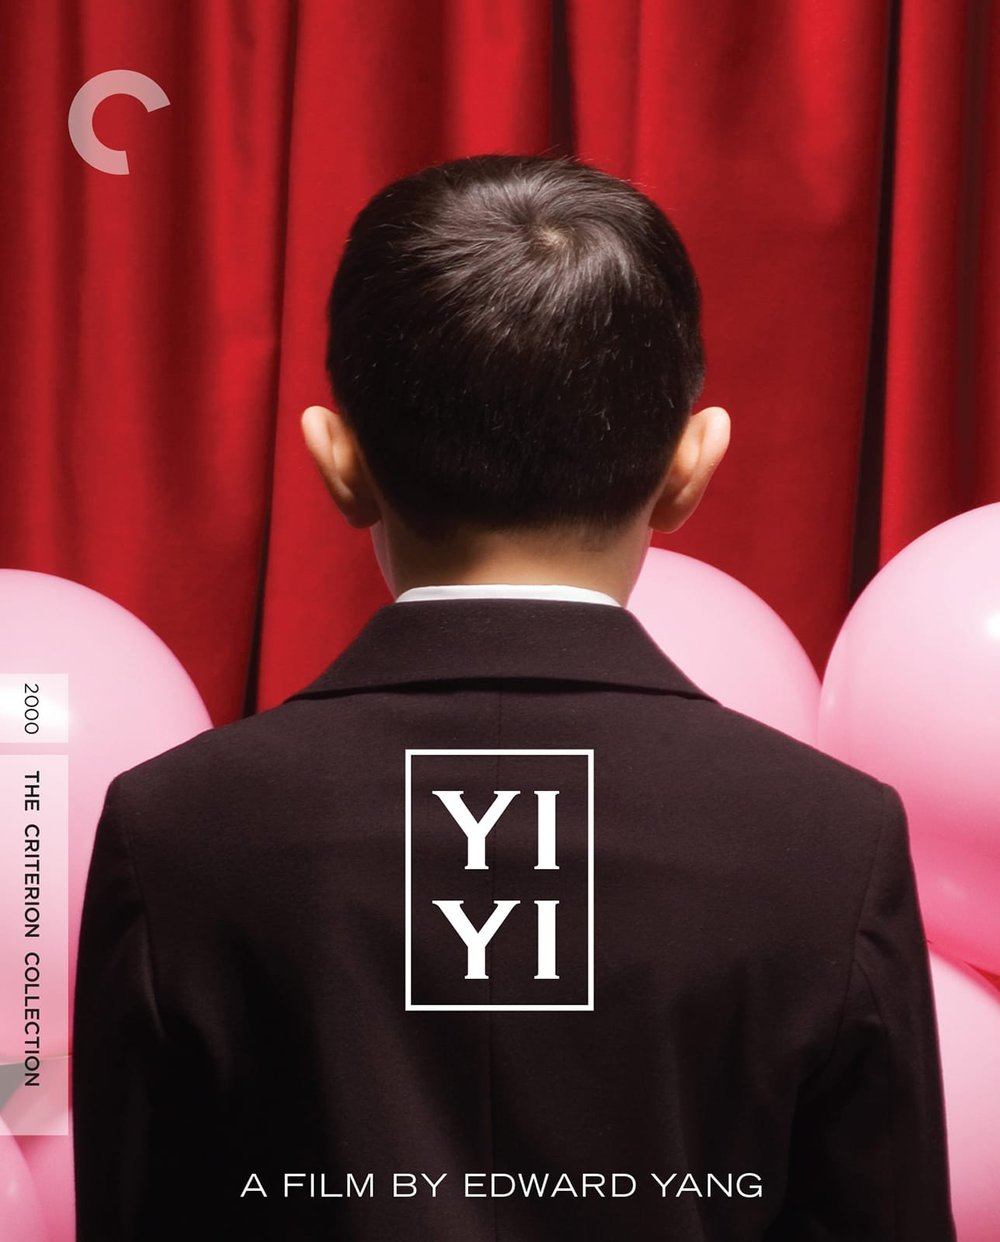 Yi Yi (2000) - Directed by: Edward YangStarring: Nien-Jen Wu, Kelly Lee, Jonathan ChangRated: NR (Suggested PG-13 for Thematic Elements and Brief Nudity)Running Time: 2 h 53 mTMM Score: 5 stars out of 5STRENGTHS: Writing, Directing, Cinematography, Acting, AestheticWEAKNESSES: -